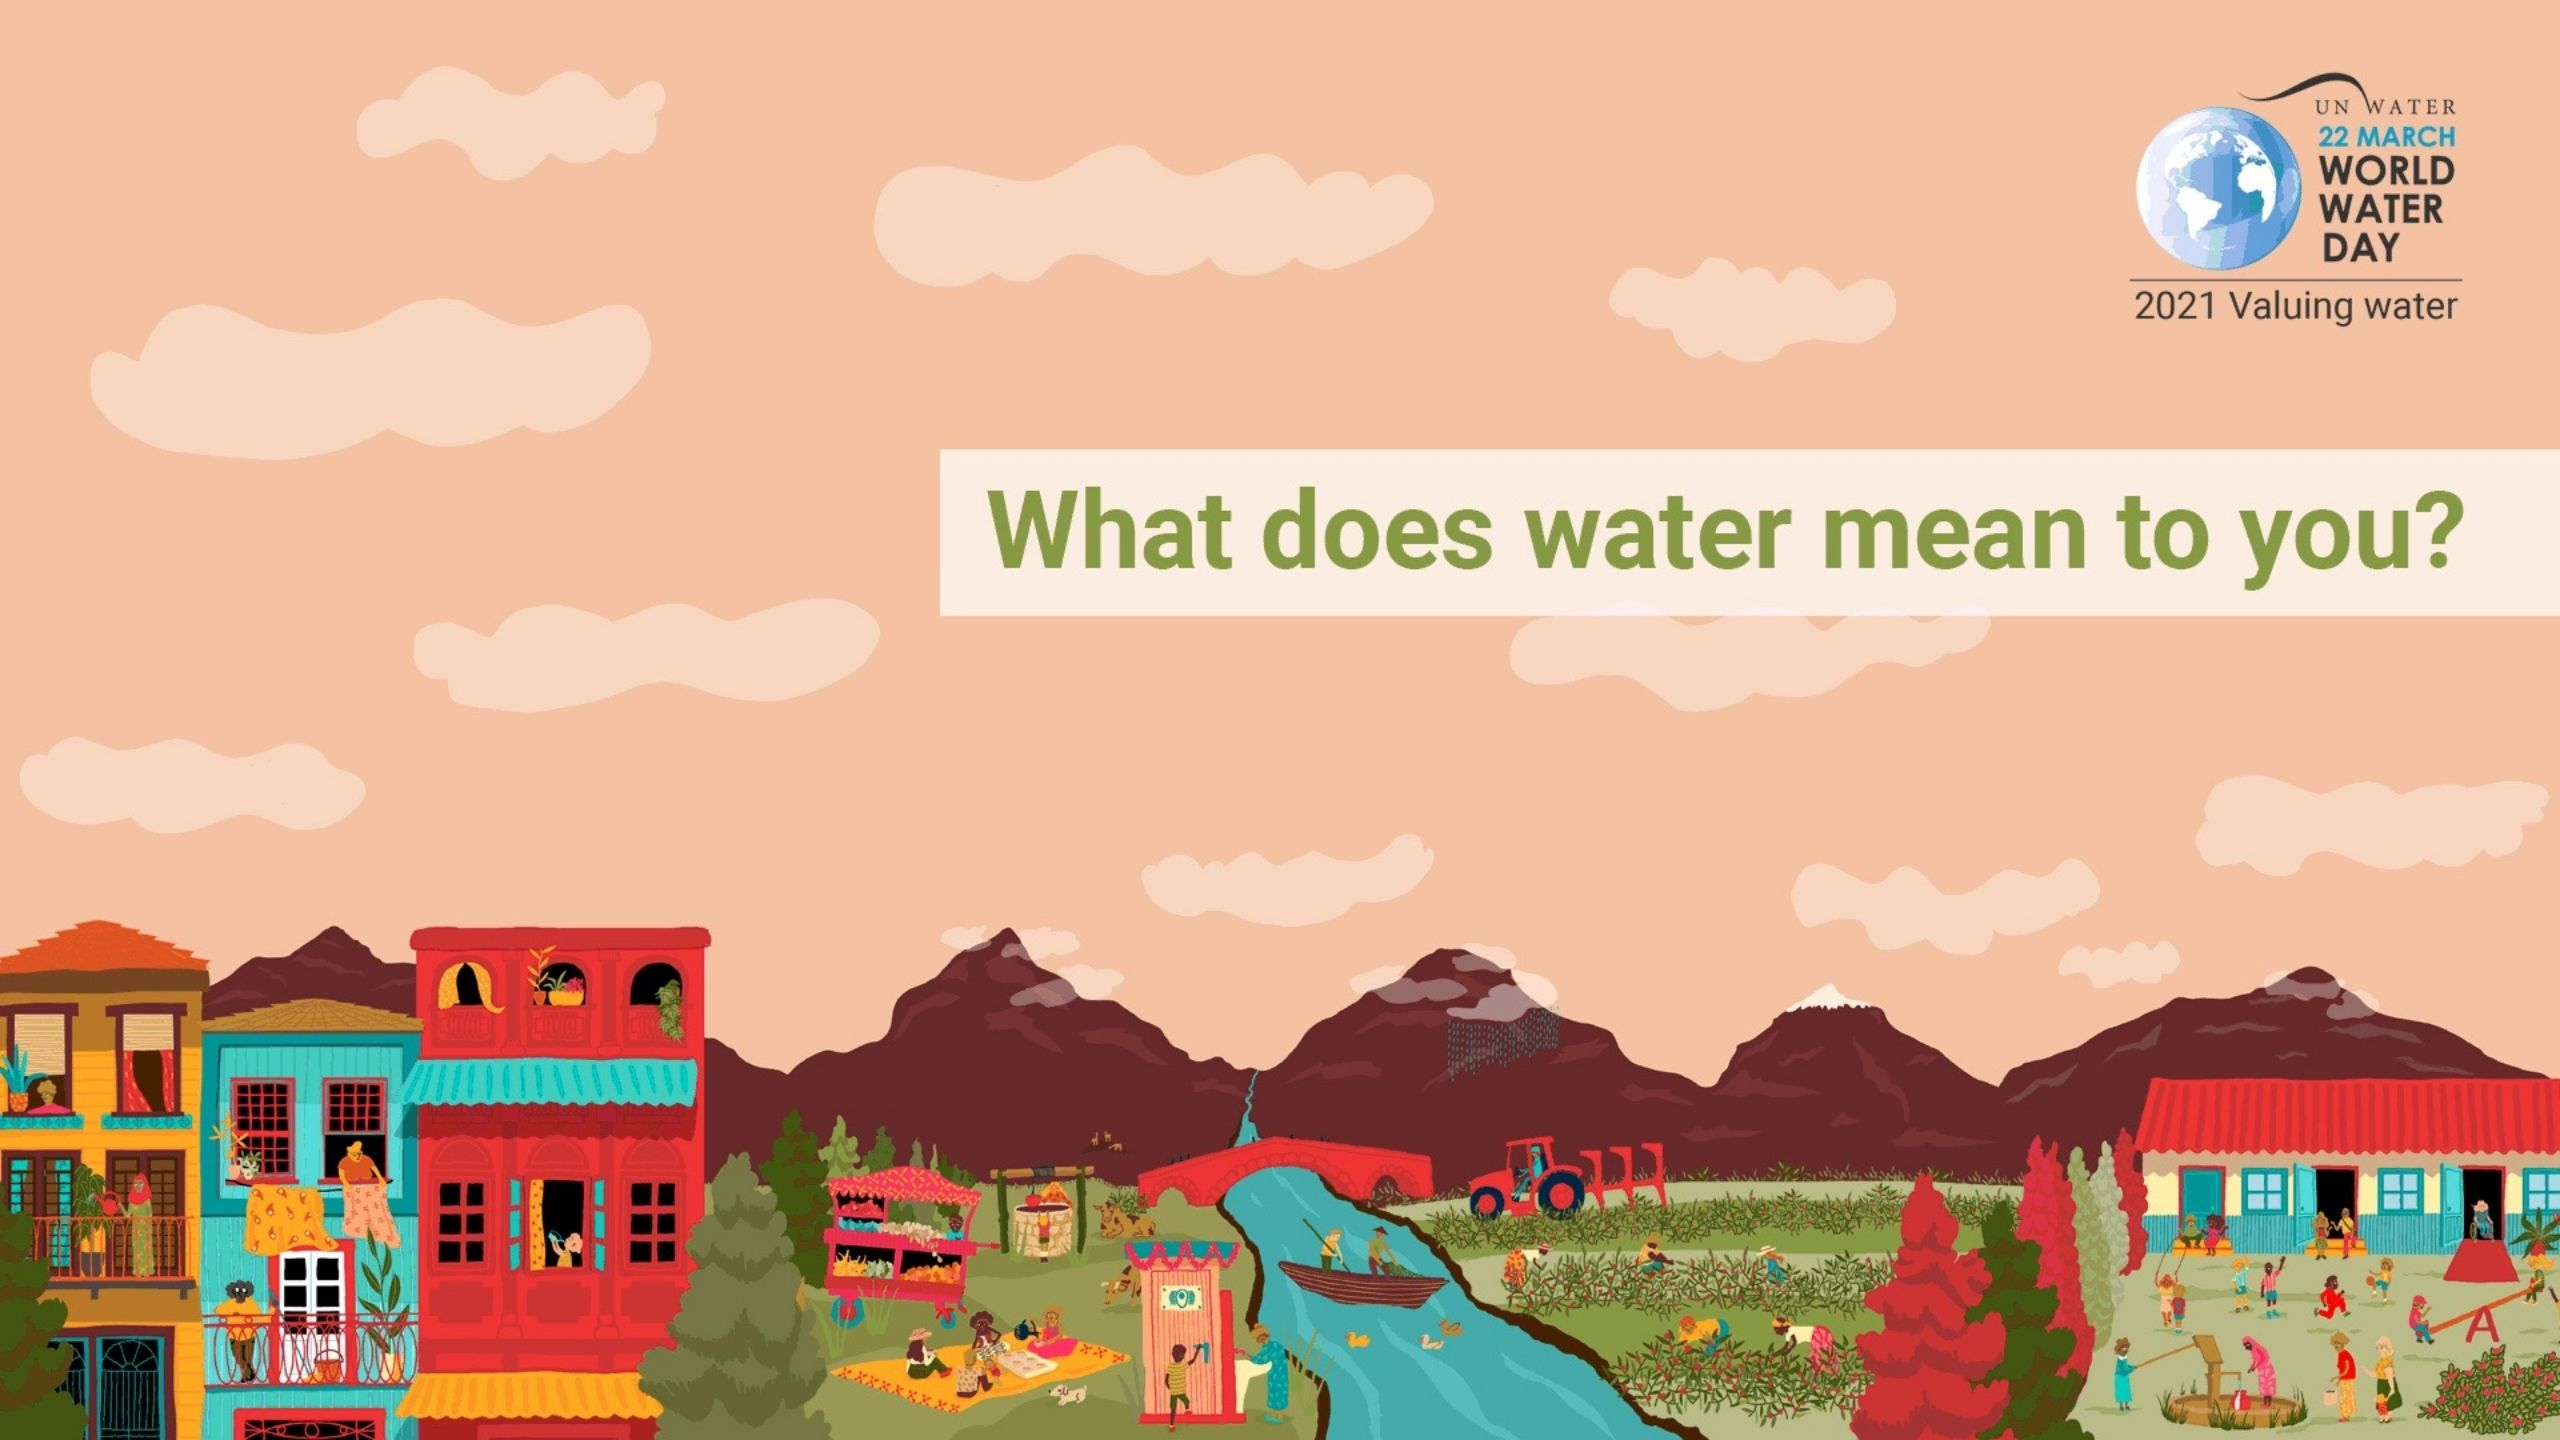 What does water mean to you?